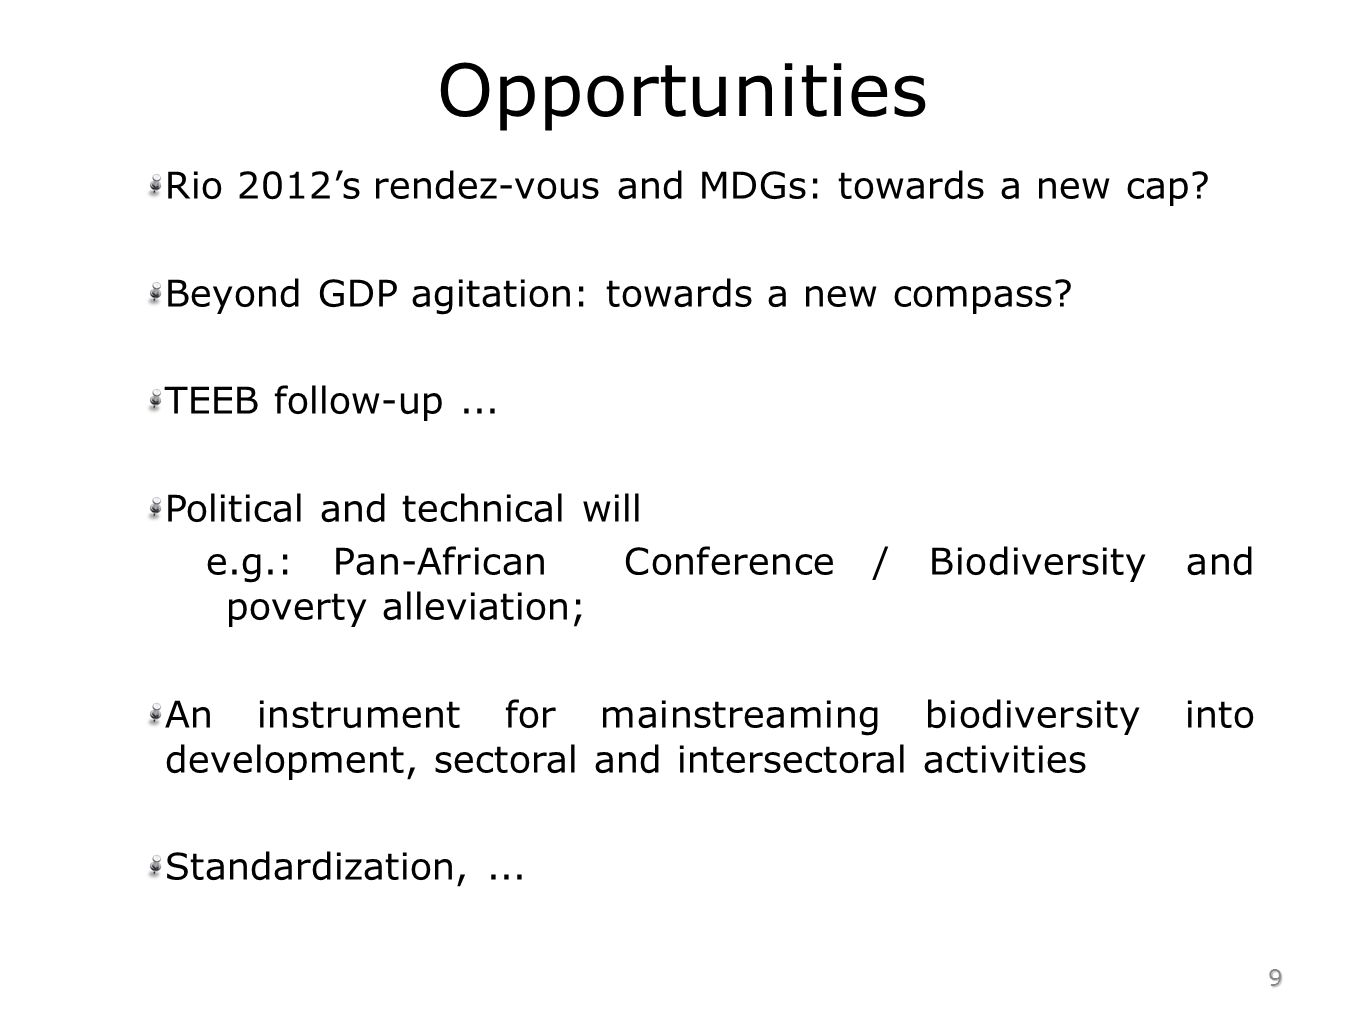 Opportunities Rio 2012s rendez-vous and MDGs: towards a new cap? Beyond GDP agitation: towards a new compass? TEEB follow-up... Political and technica